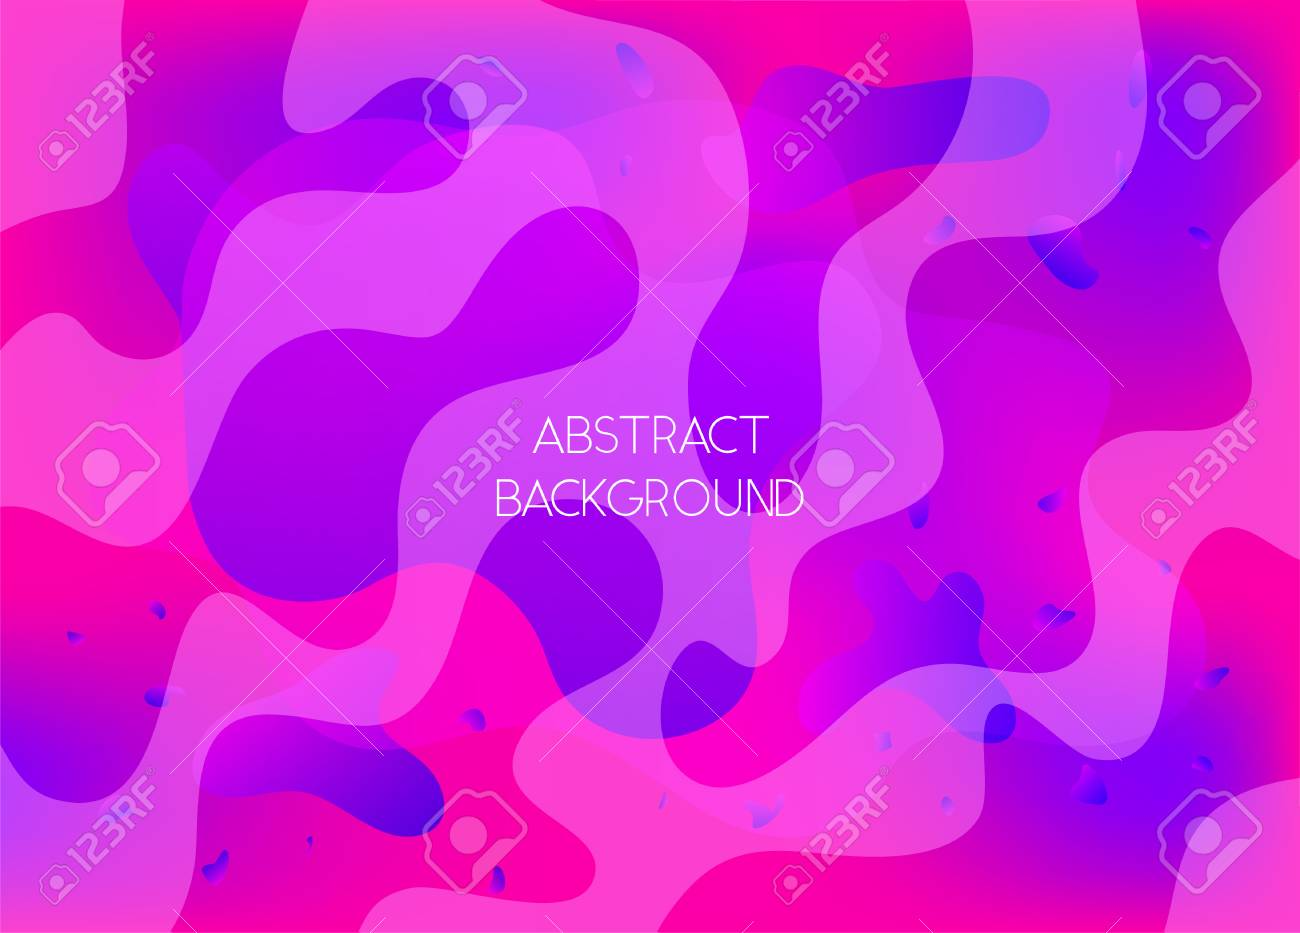 Abstract Pink And Violet Vibrant Background With Wavy Shapes Modern Wallpaper With Gradient Blobs For Ui Design Web Apps Wallpaper Banner